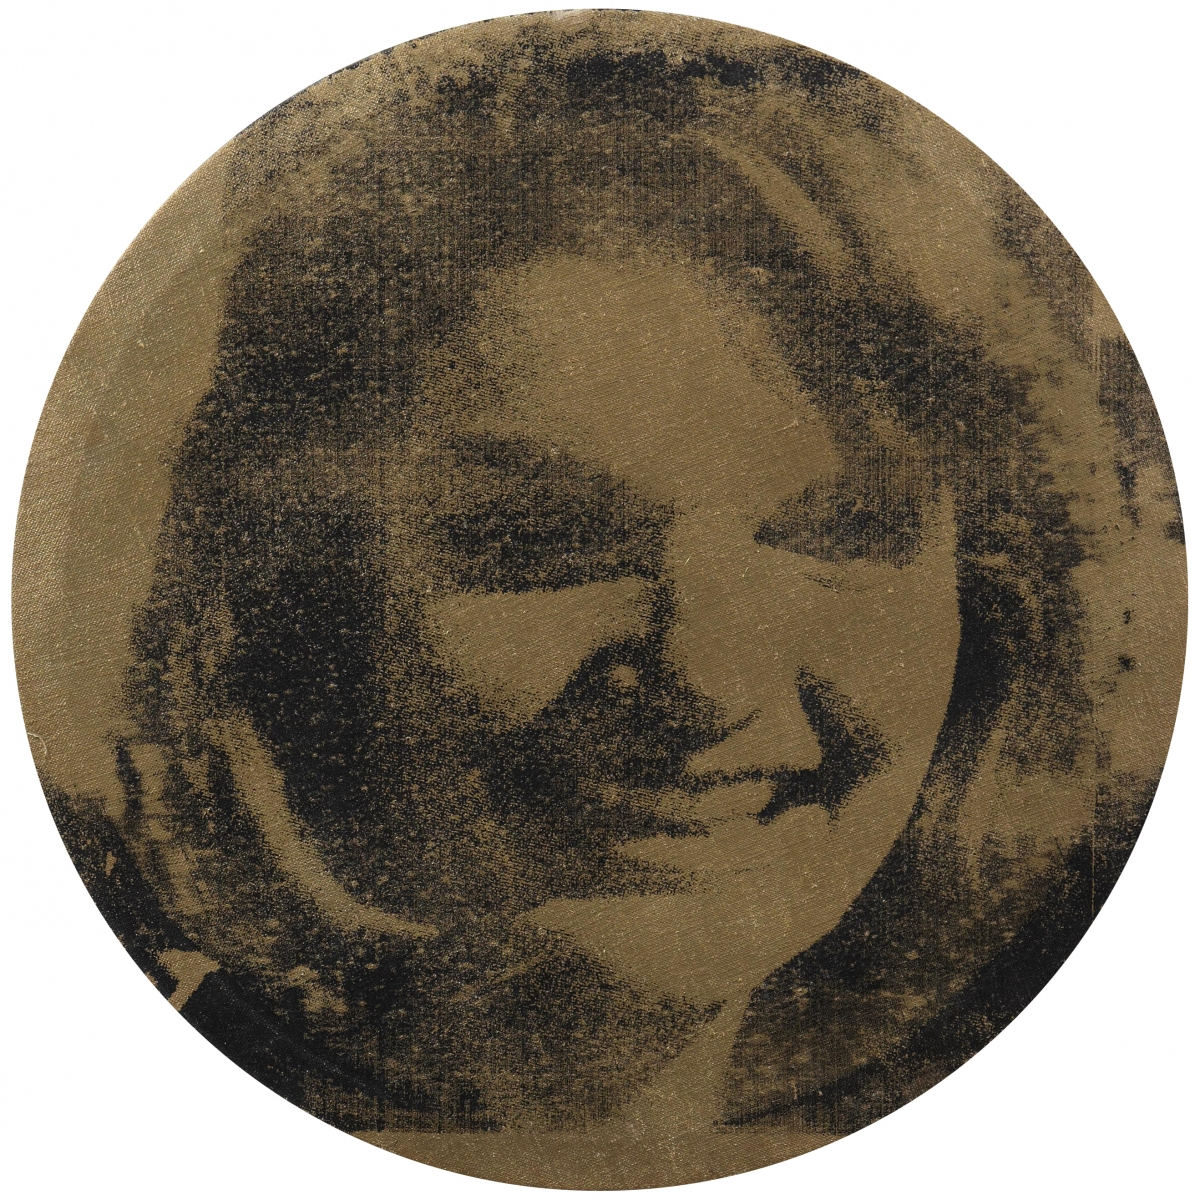 Andy Warhol (American, 1928–1987), Round Jackie, 1964. Spraypaint and silkscreen ink on linen, diam. 45.3 cm. Schorr Family Collection / Round Jackie, 1964. Spraypaint and silkscreen ink on linen, diam. 45.3 cm. Schorr Family Collection. c Andy Warhol Foundation for the Visual Arts / Artists Rights Society (ARS), New York / photo: Bruce M. White